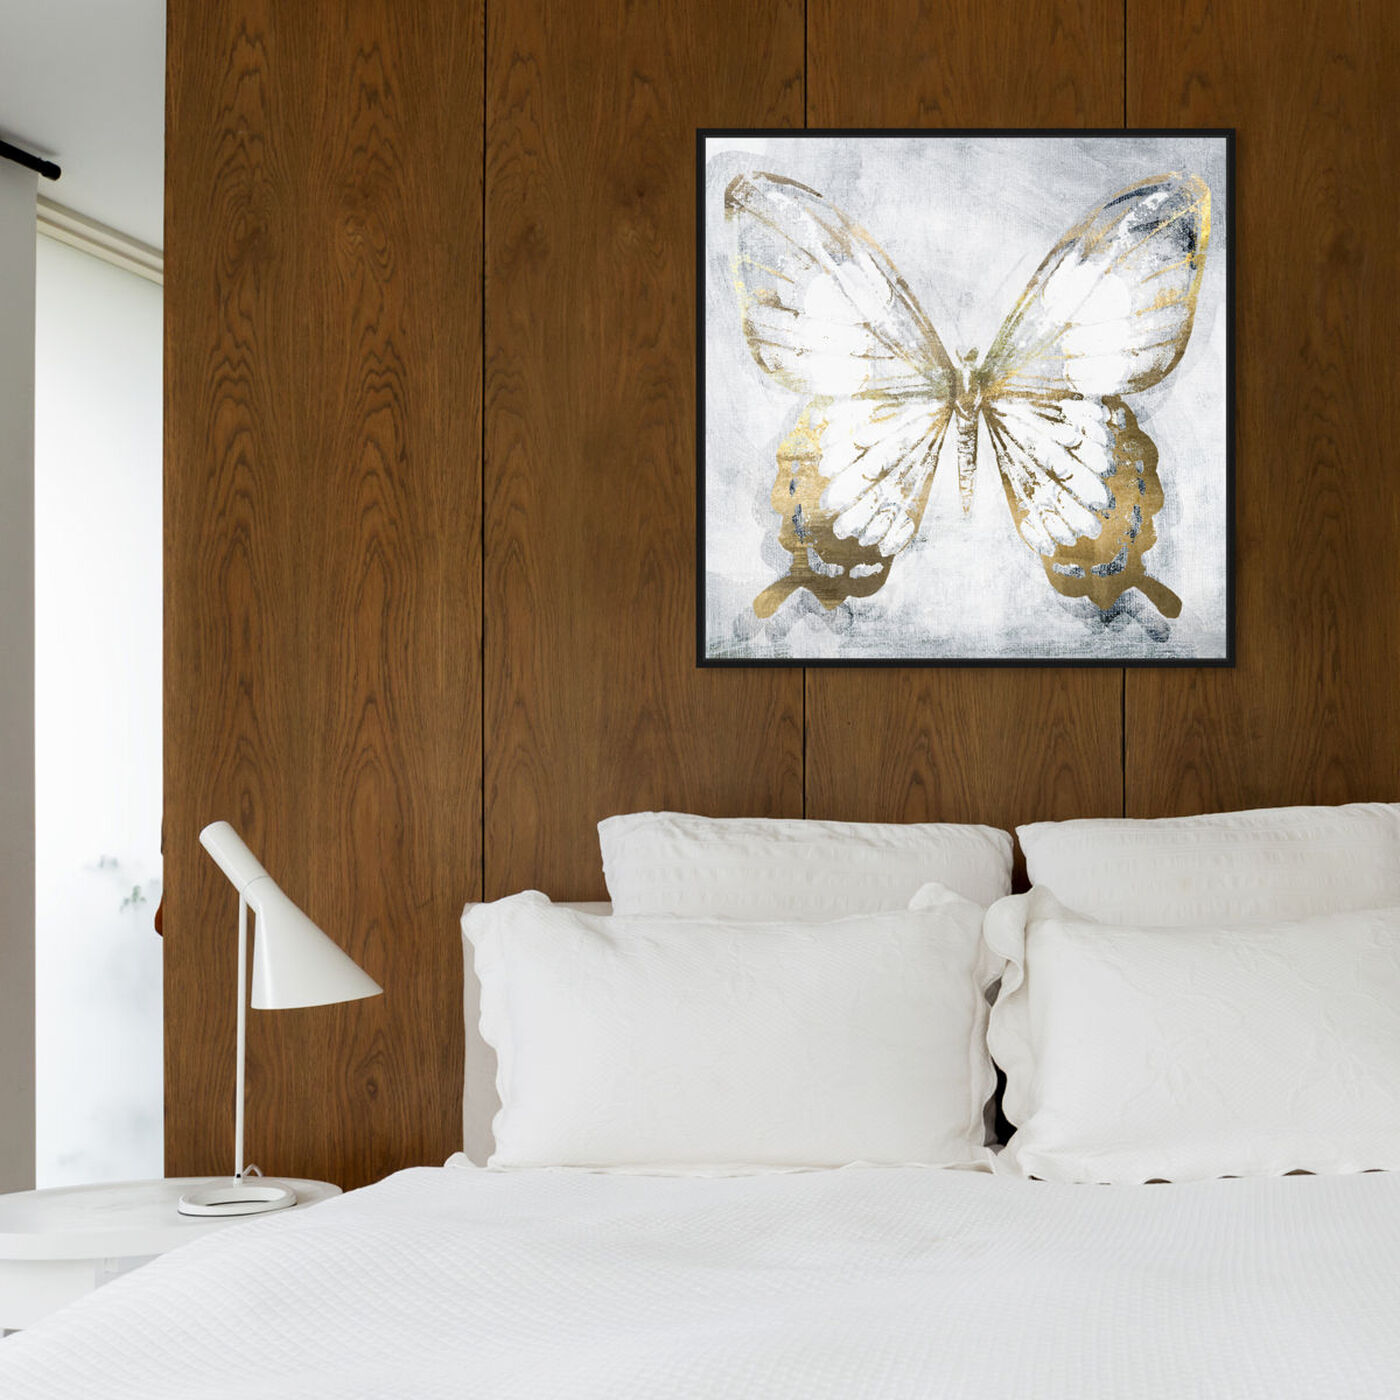 Hanging view of Butterfly Eroded featuring animals and insects art.